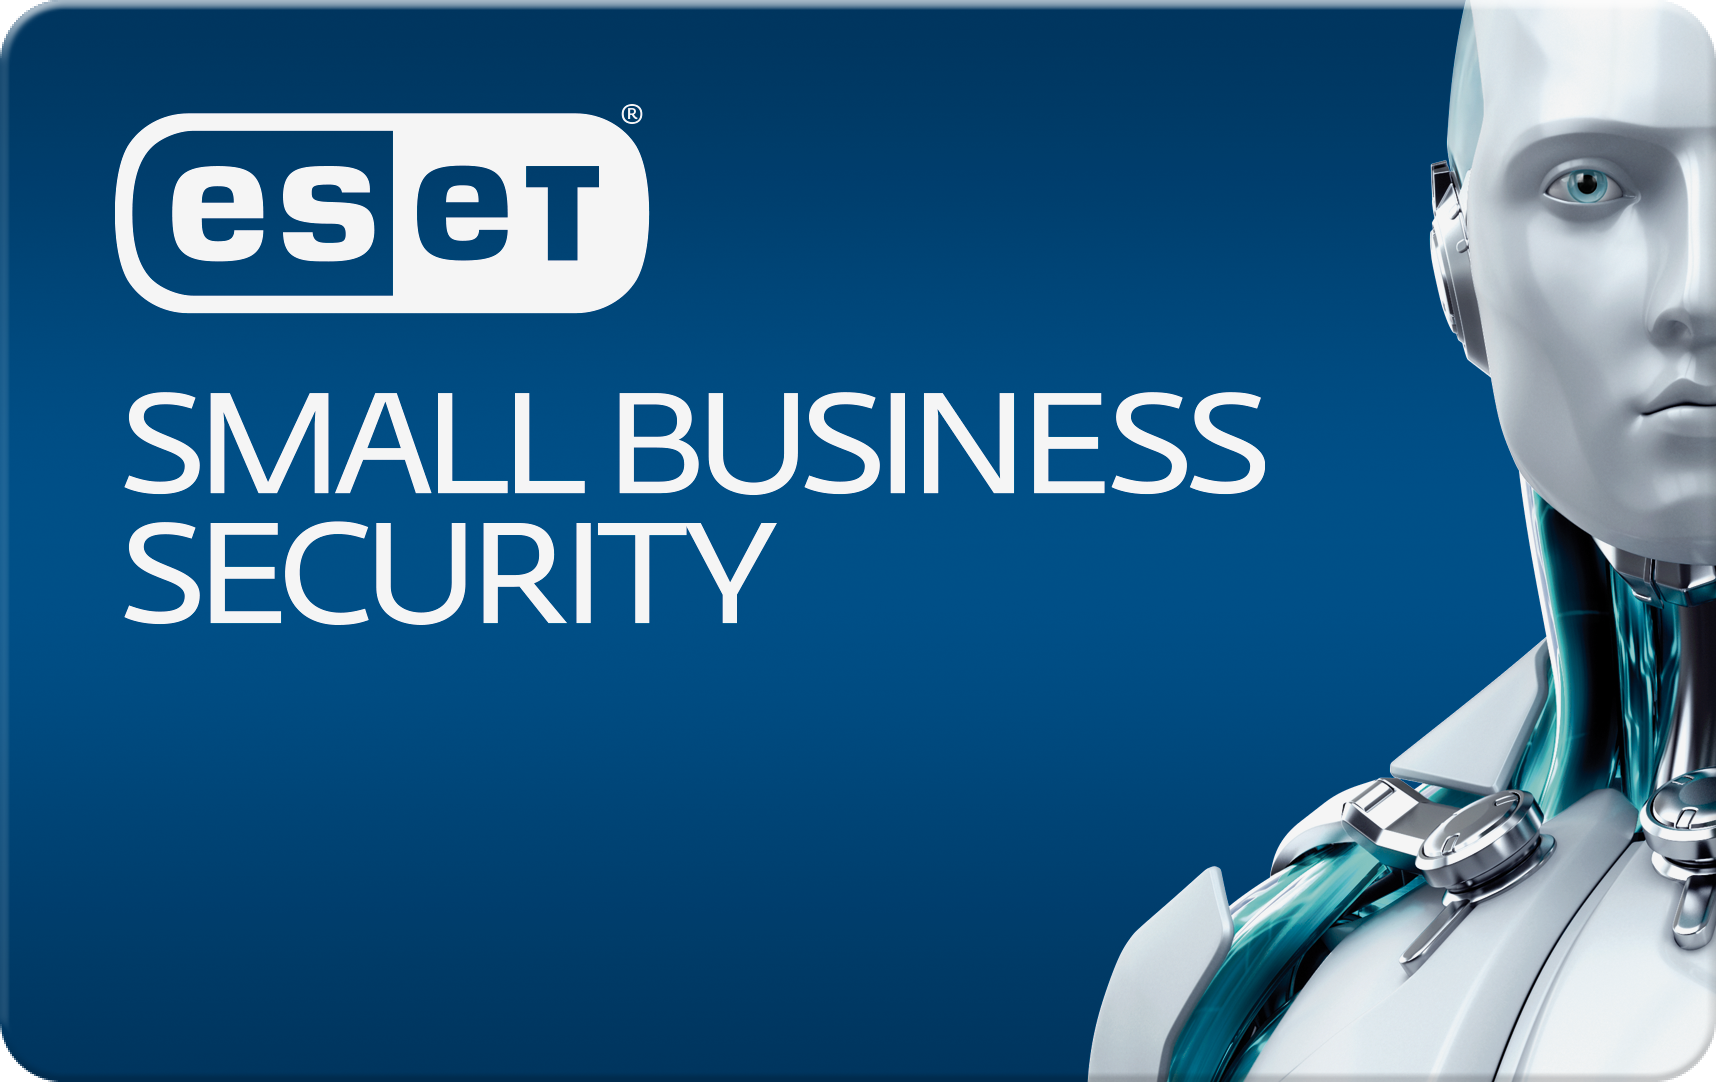 Eset Antivirus Centro Systems Ltd